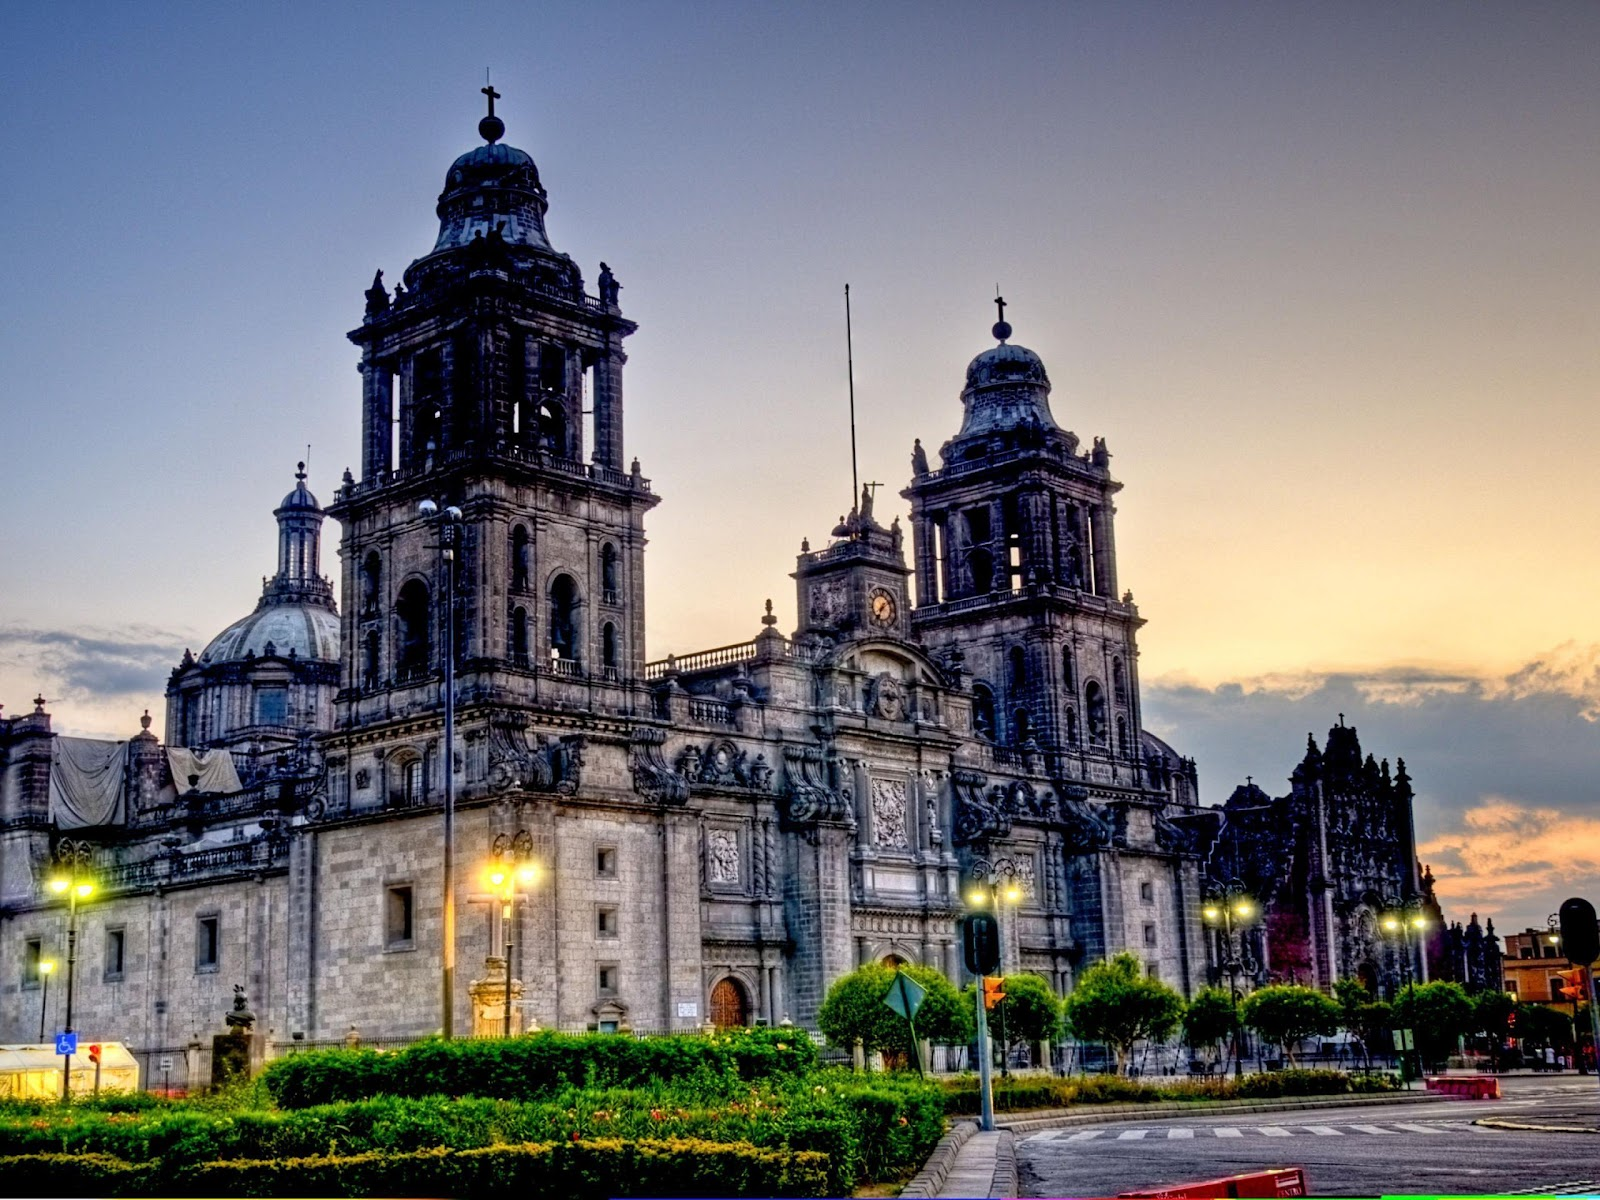 C:\Users\rwil313\Desktop\Cathdral in Mexico City.jpg